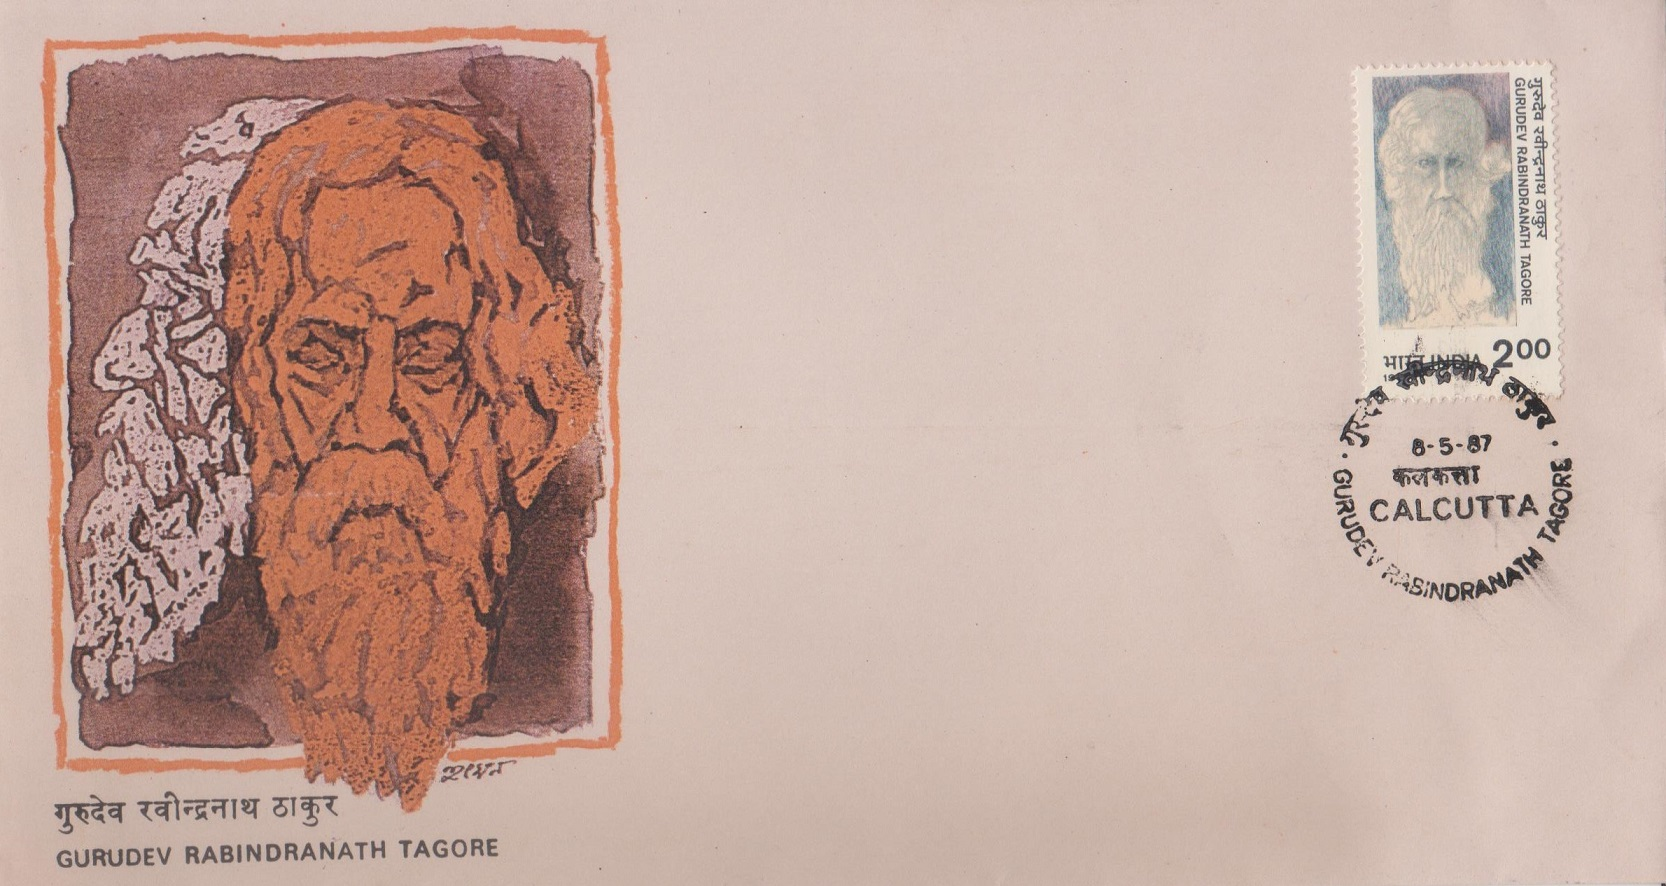 Self portrait drawn by Biswakabi Rabindranath Thakur